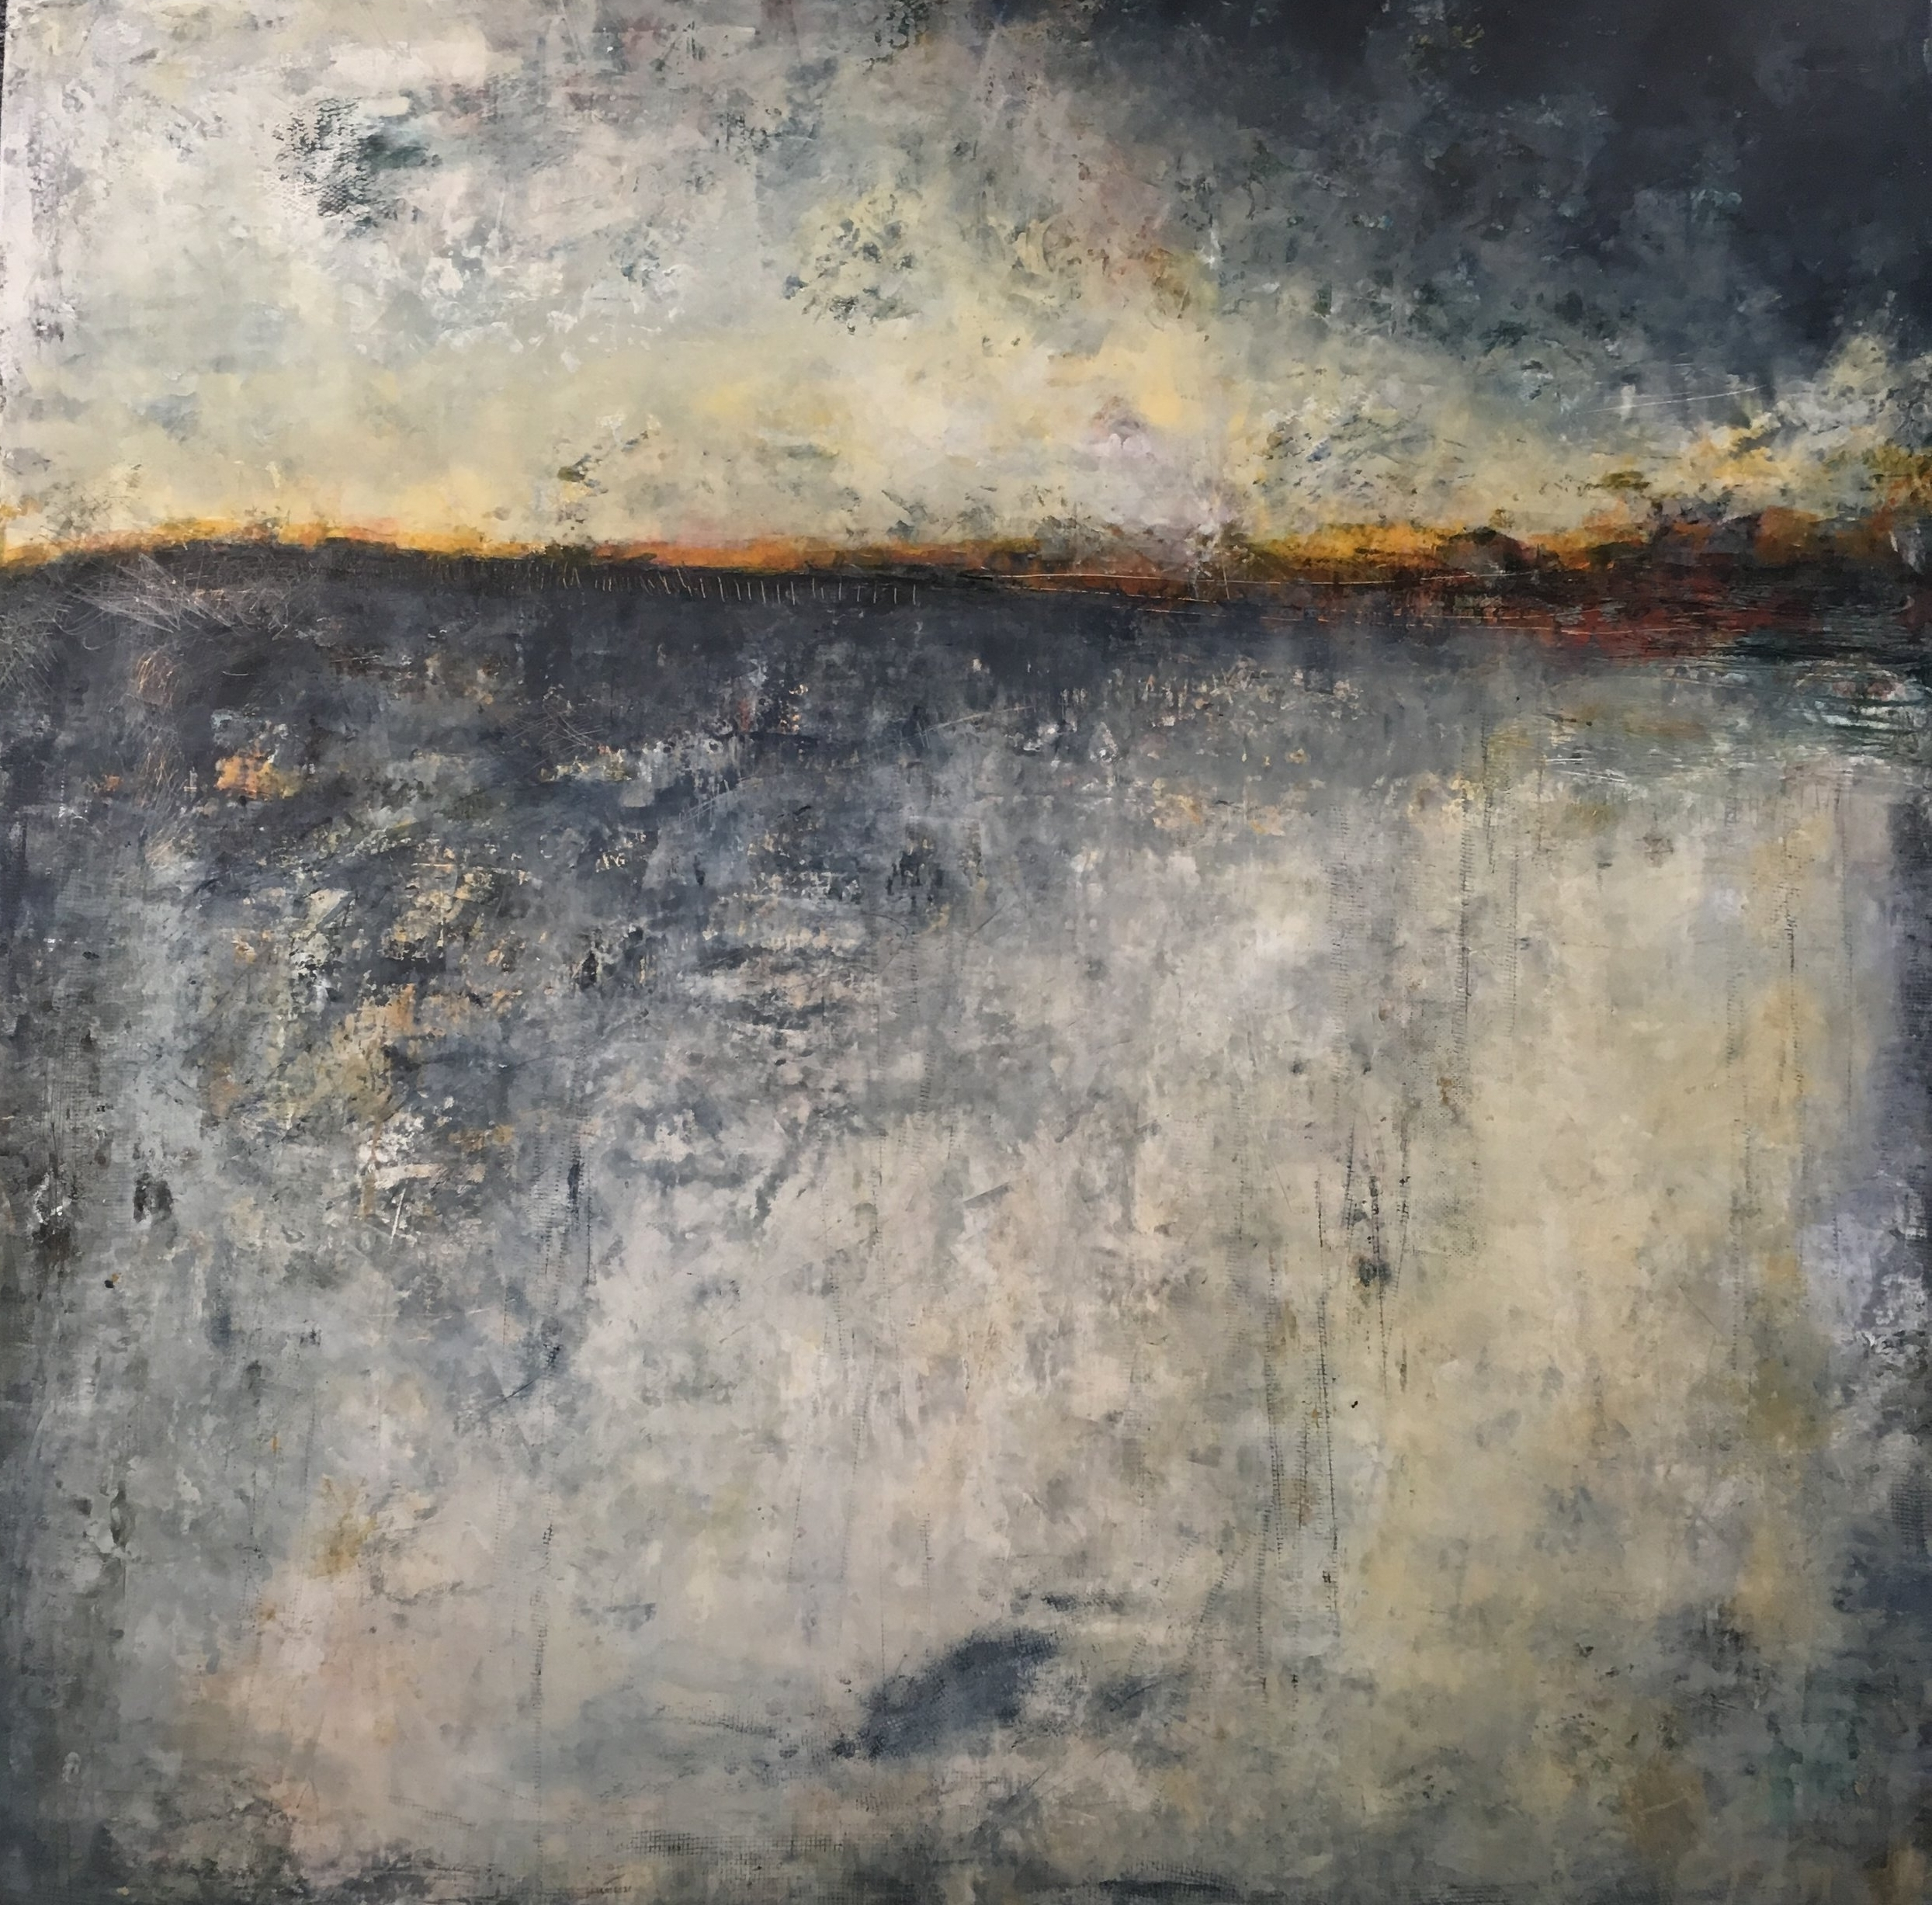 hope   48 x 48 inches oil + cold wax